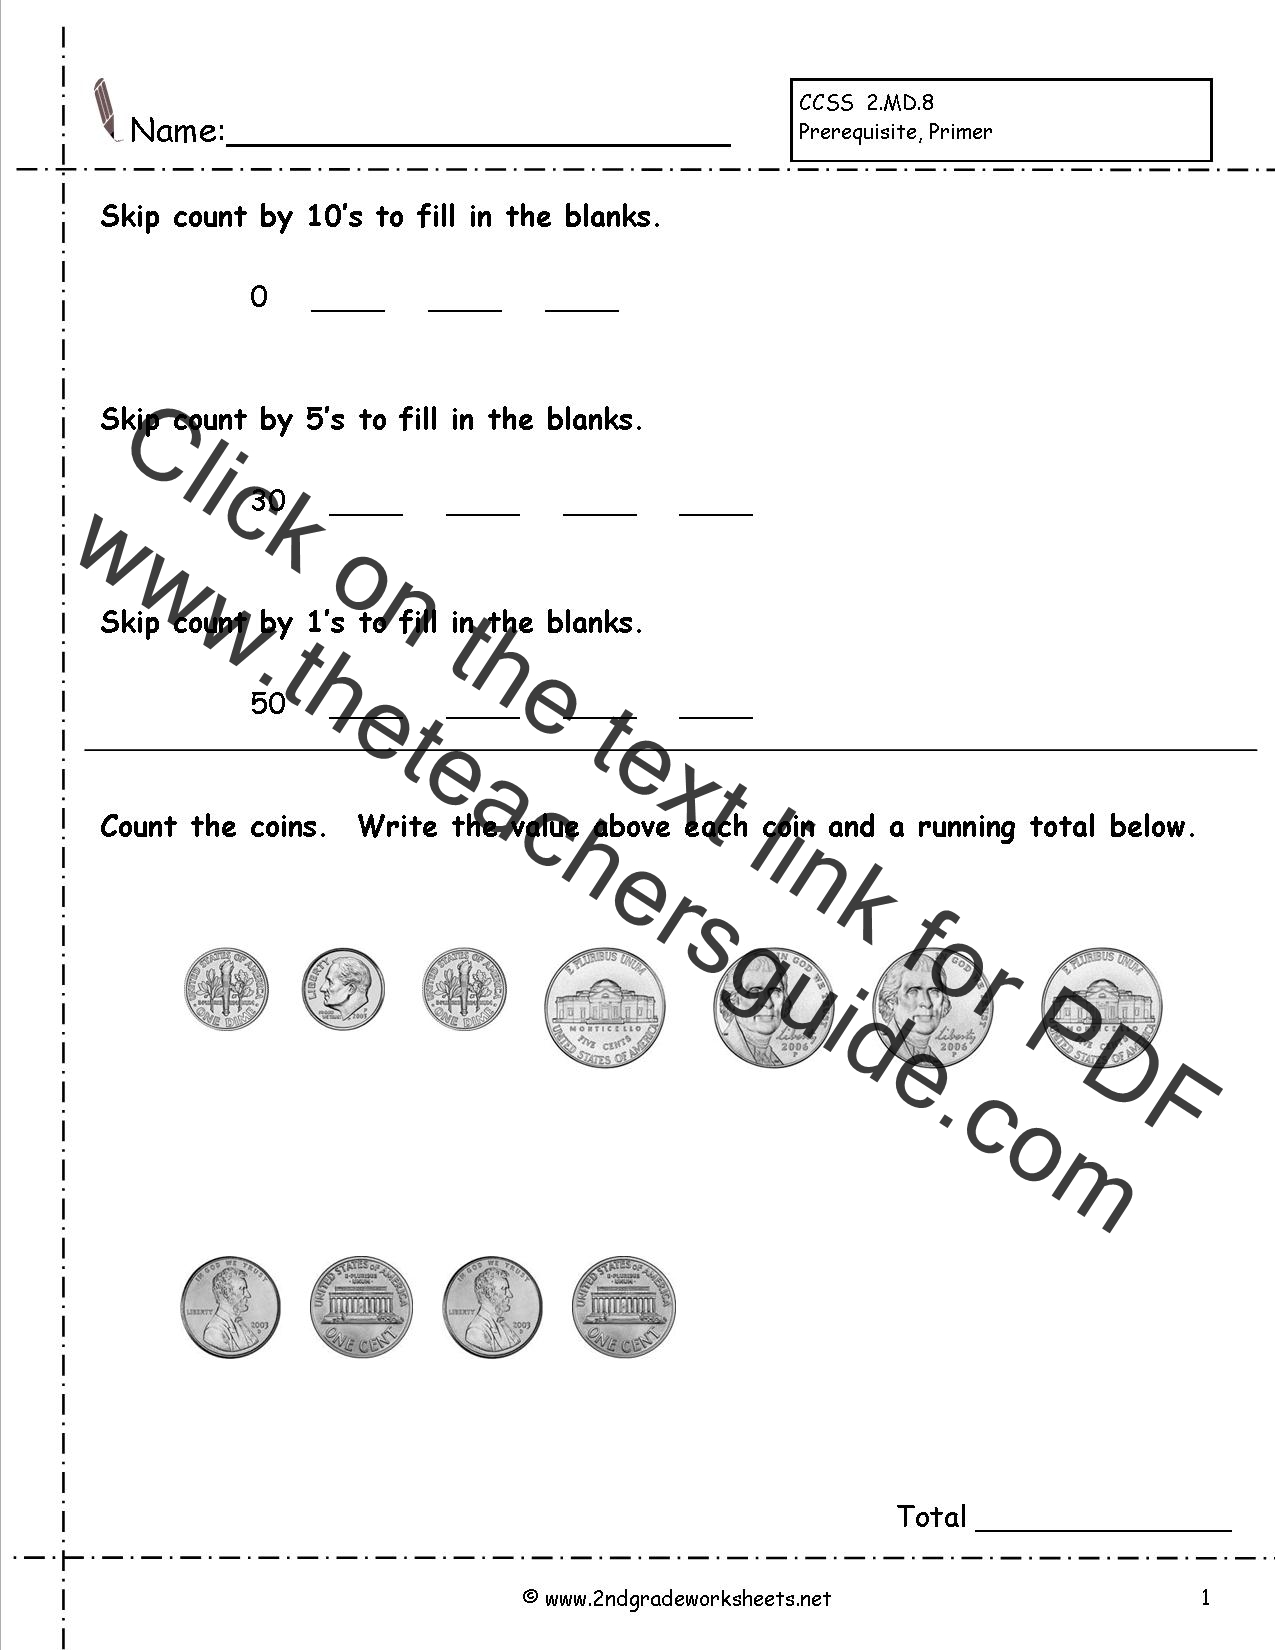 Stupendous Counting Money Printable Worksheets